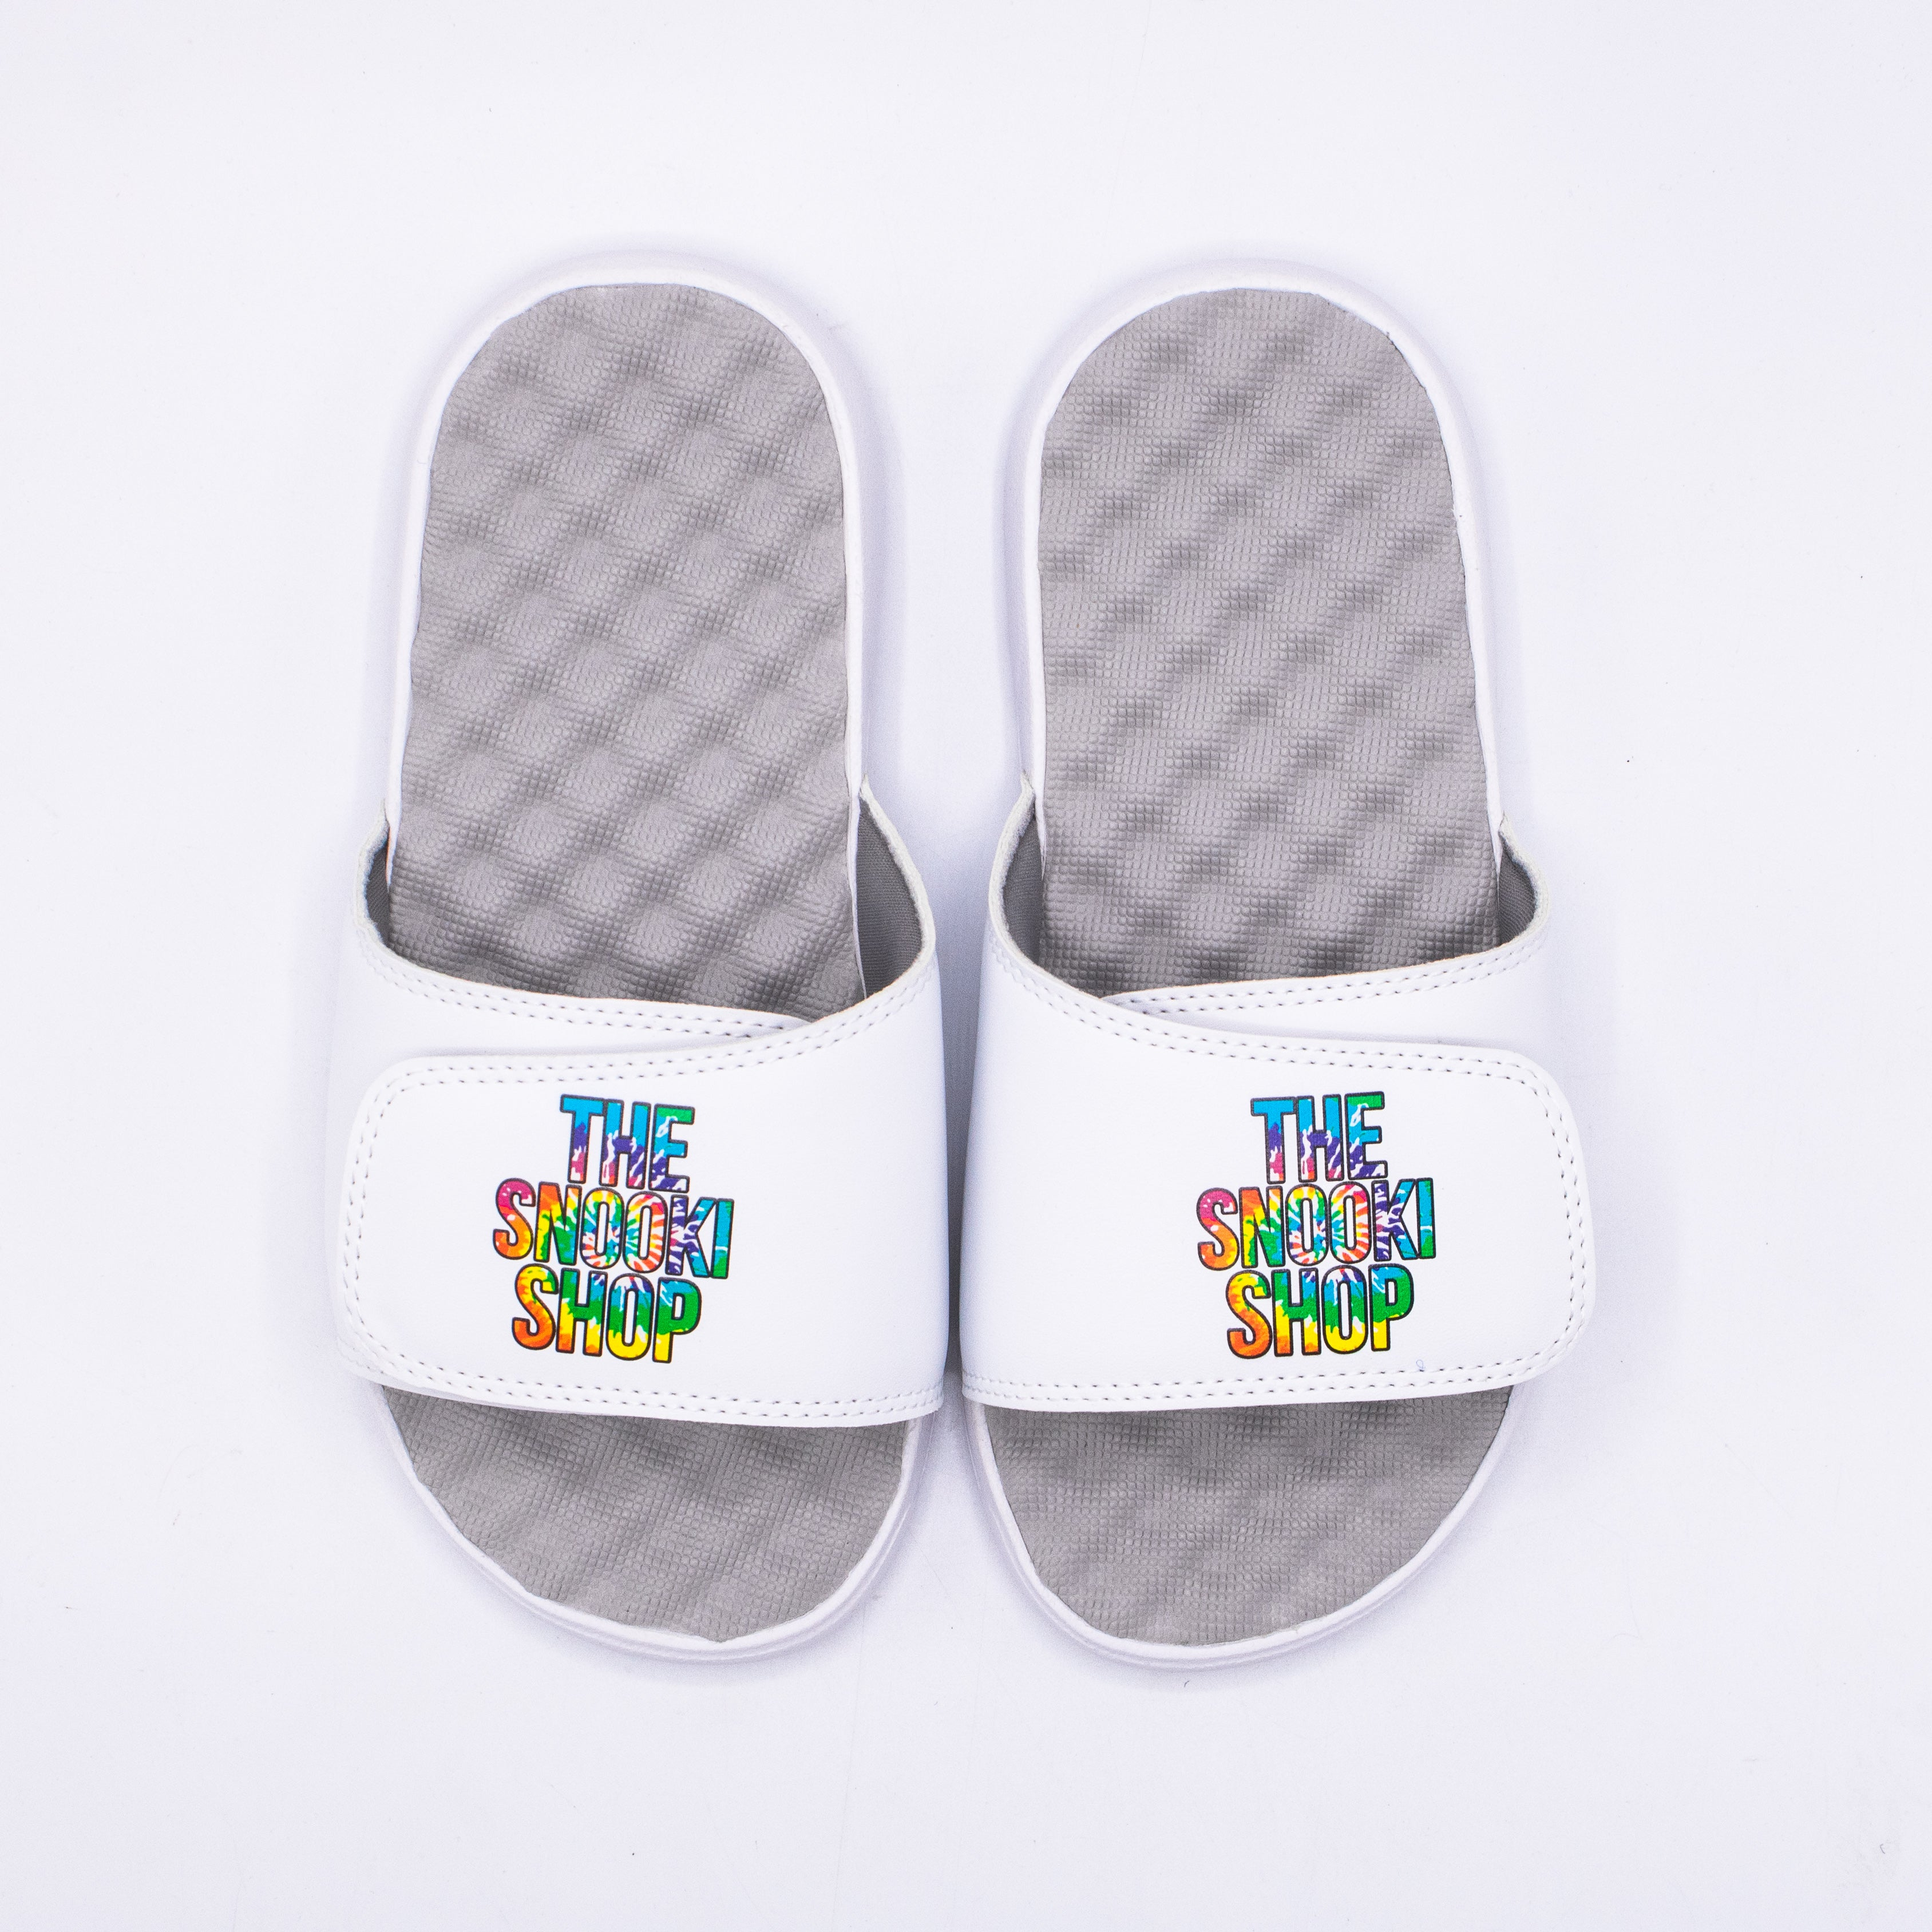 The Snooki Shop Sandals -Tie Die on White Gray Footbed